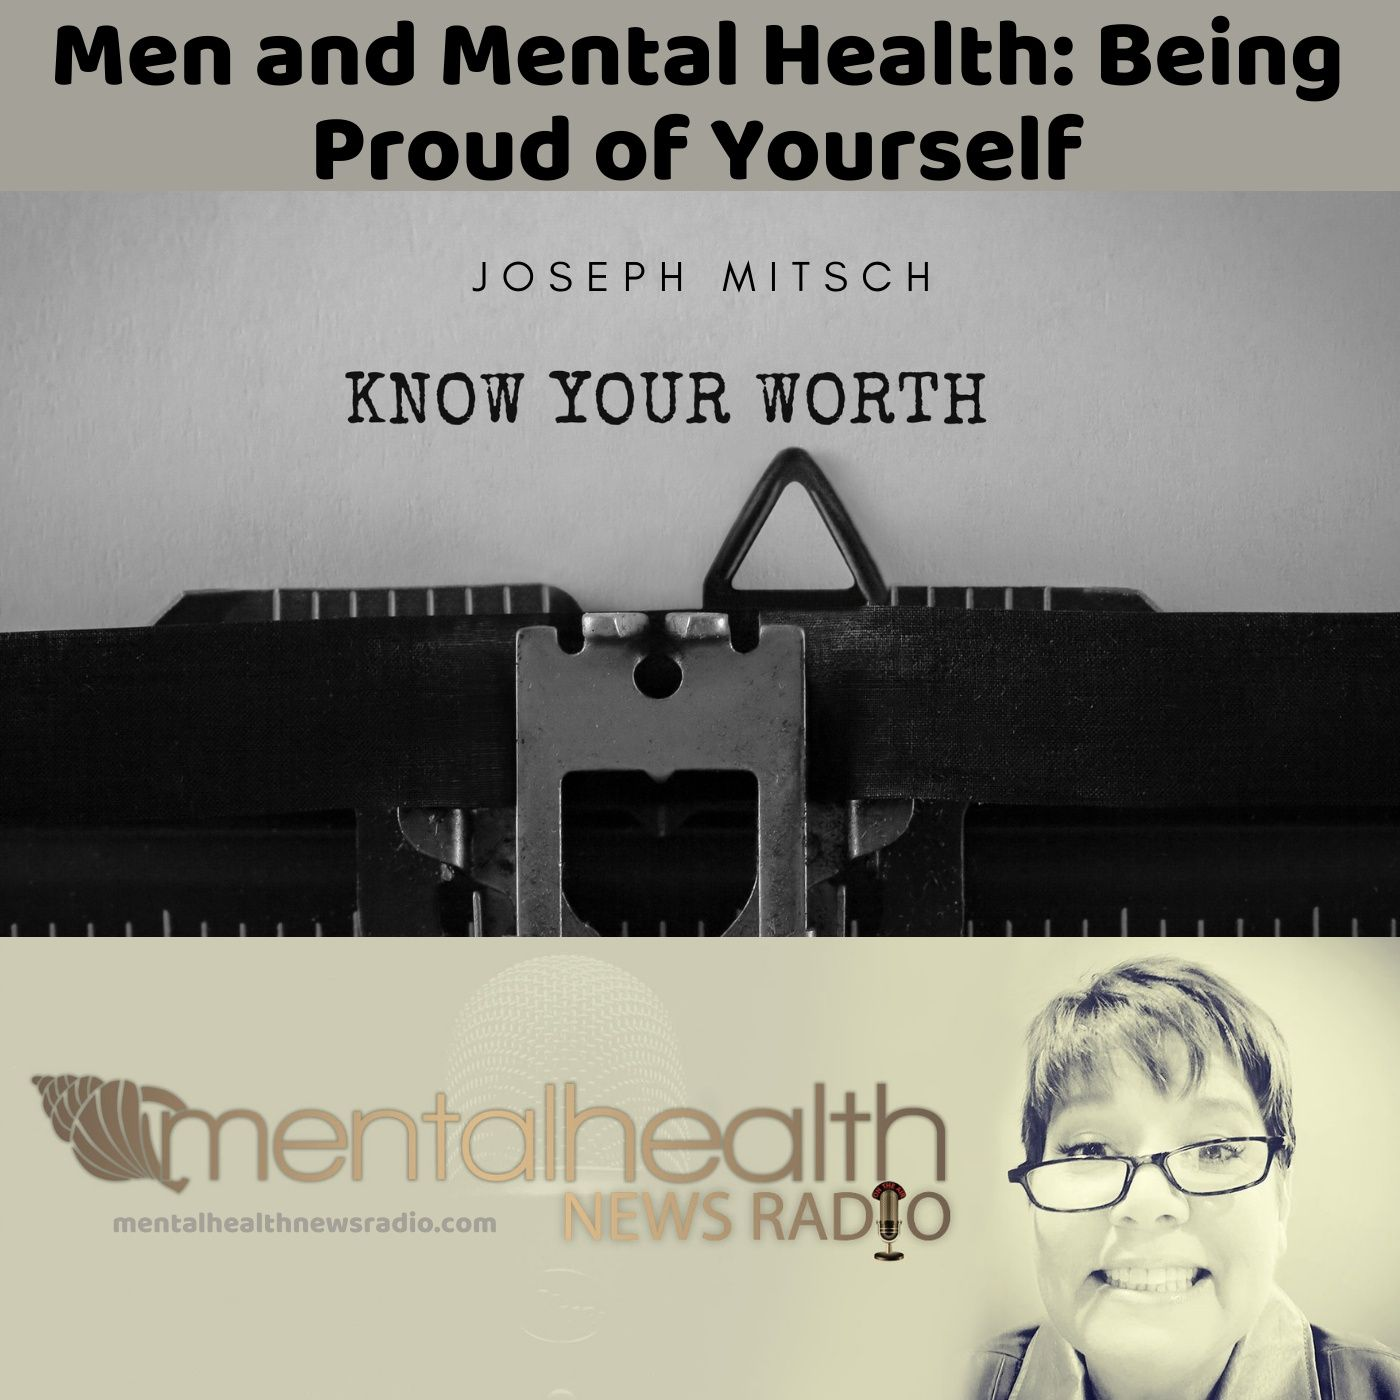 Mental Health News Radio - Men and Mental Health: Being Proud of Yourself